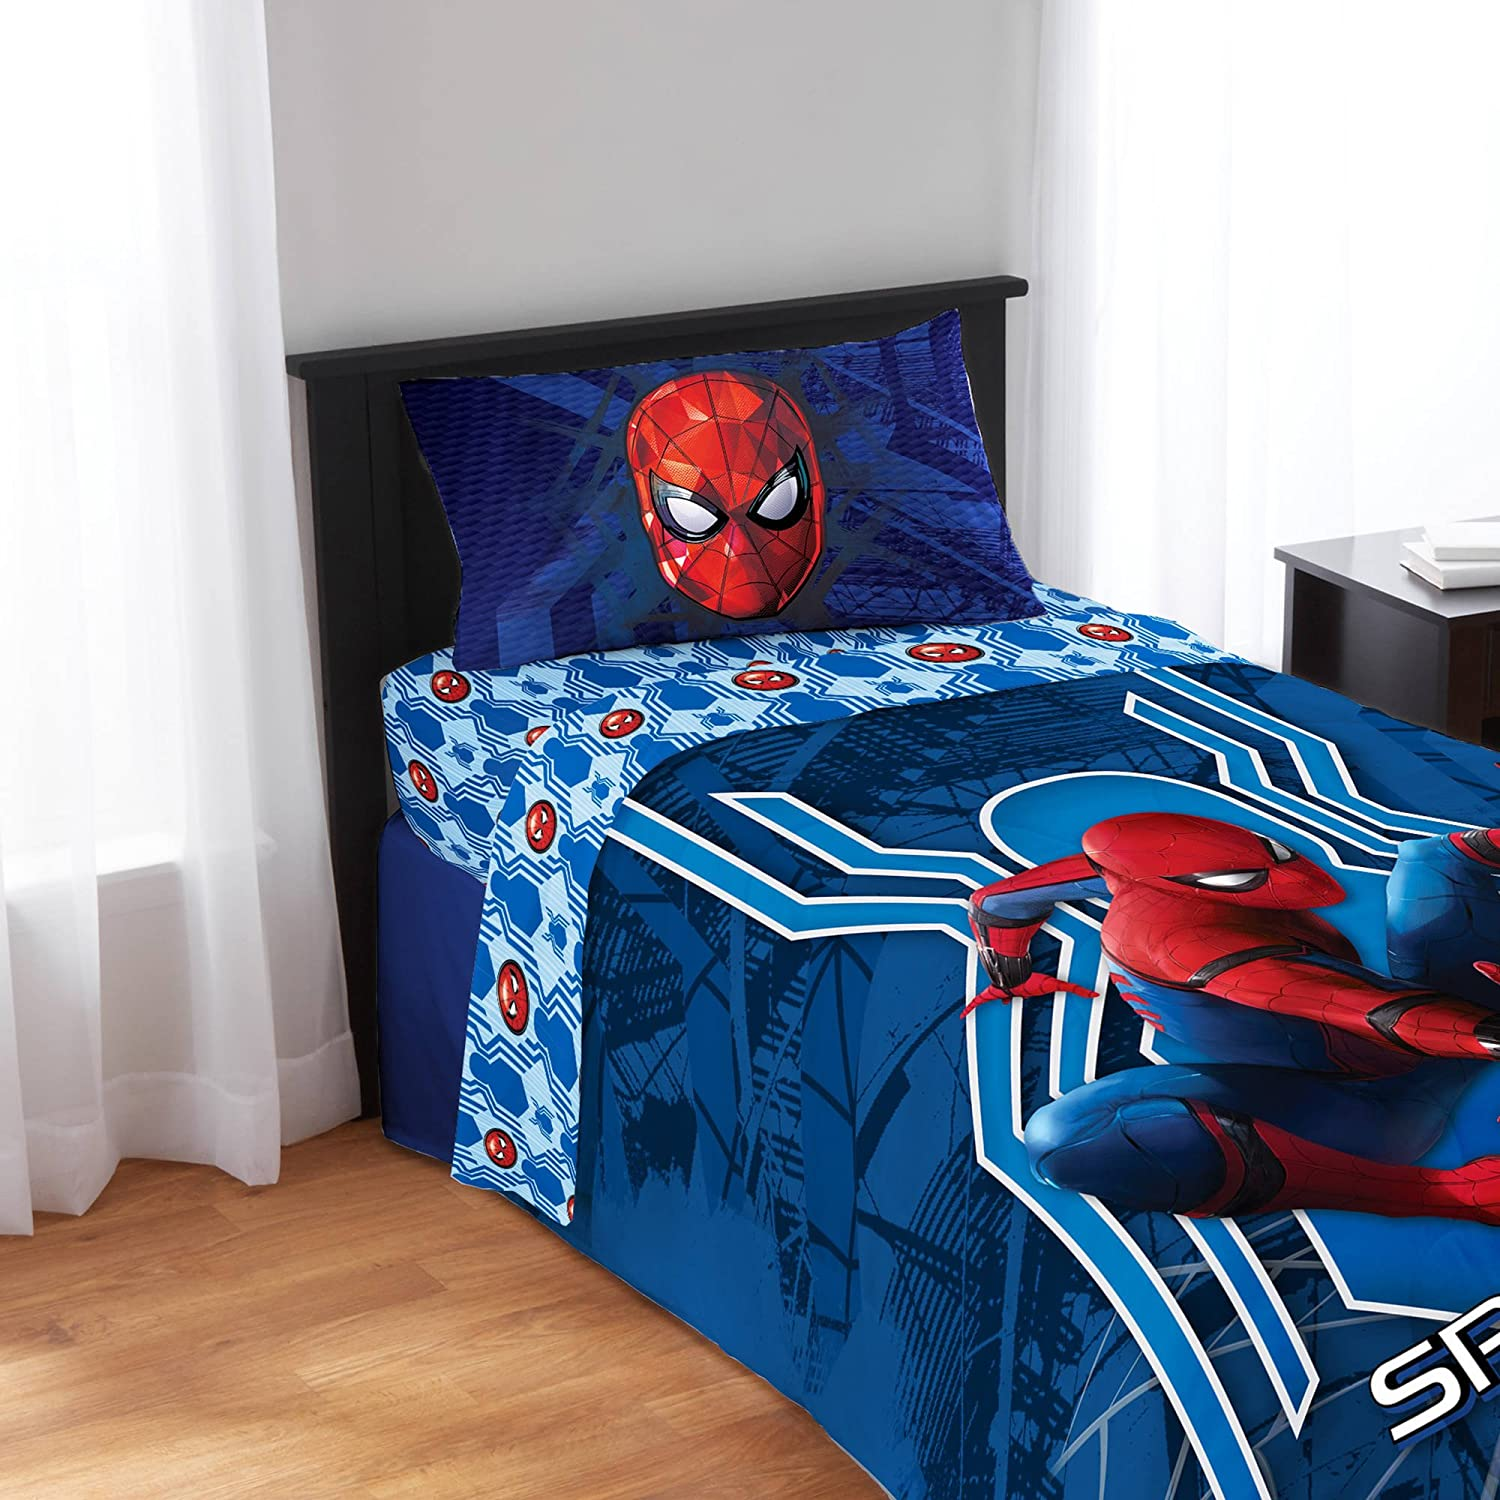 Spiderman and friends bedding - Amazon Com Spiderman Spider Man Homecoming 2017 Twin Bedding Sheet Set 3pc Sticker Sheet Home Kitchen